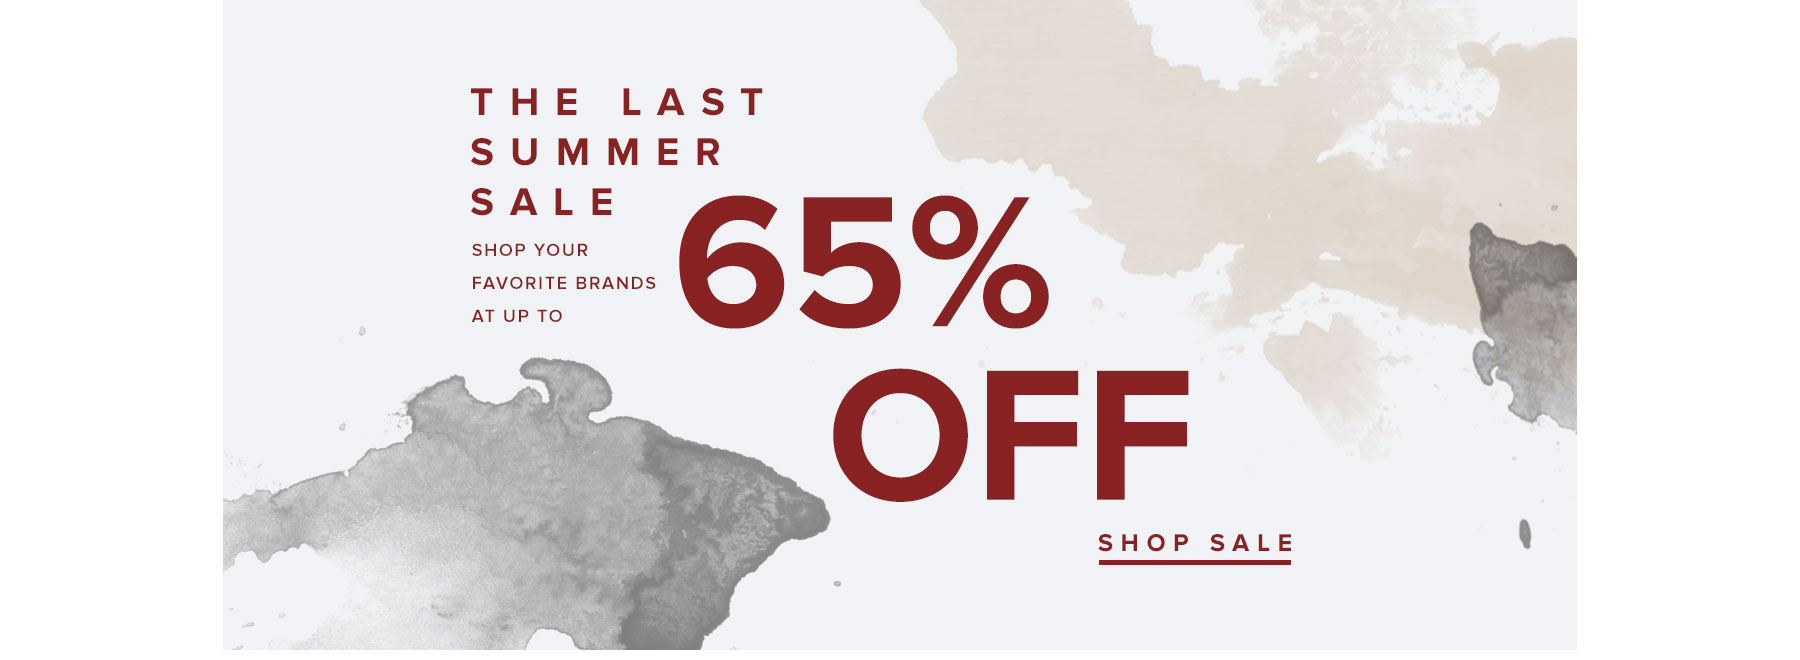 The Last Summer Sale. Shop your favorite brands at up to 65% off. Shop sale.